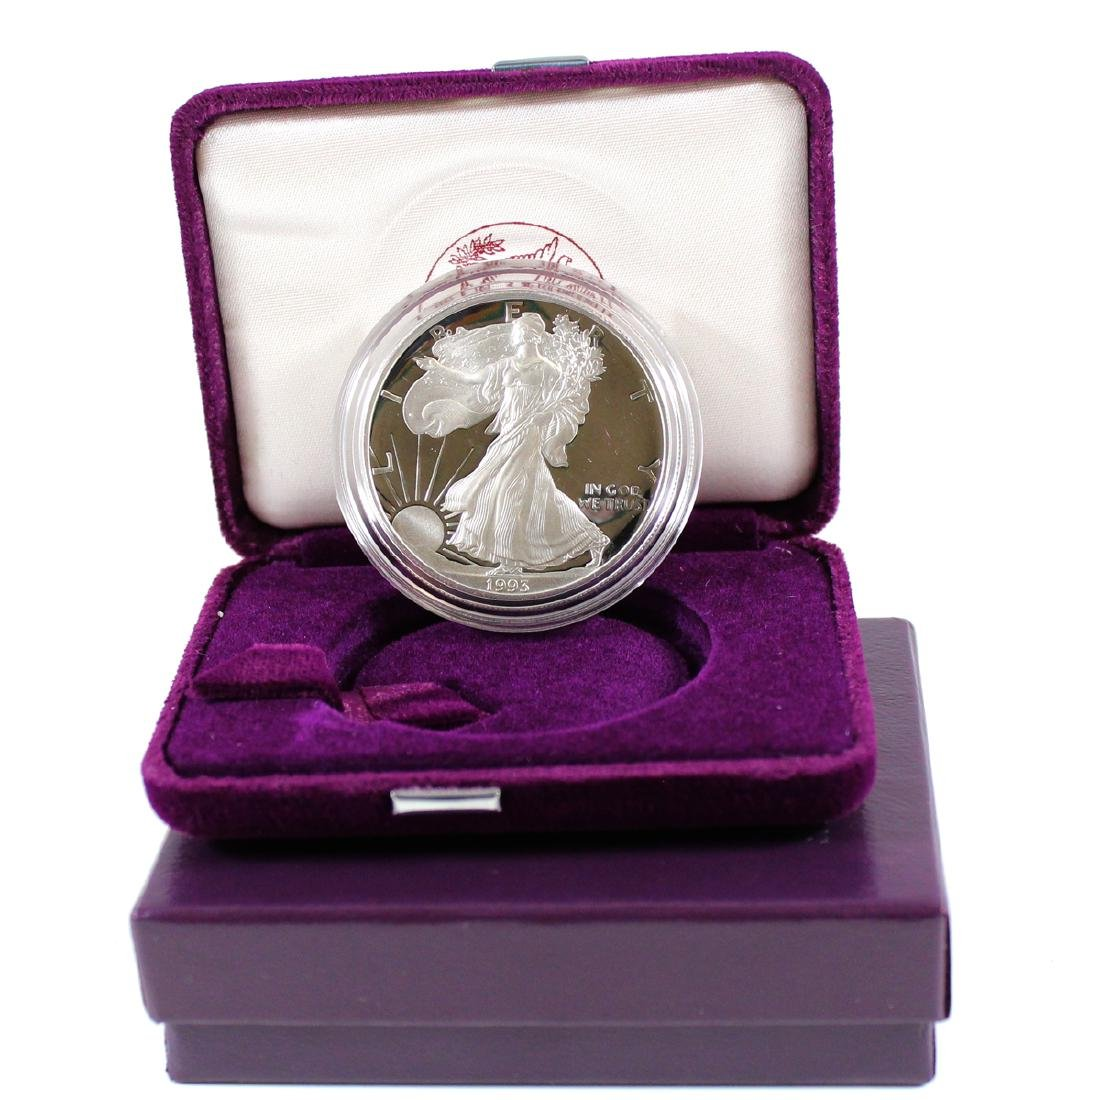 1993 US American Eagle 1oz Proof (TAX Exempt). Coin